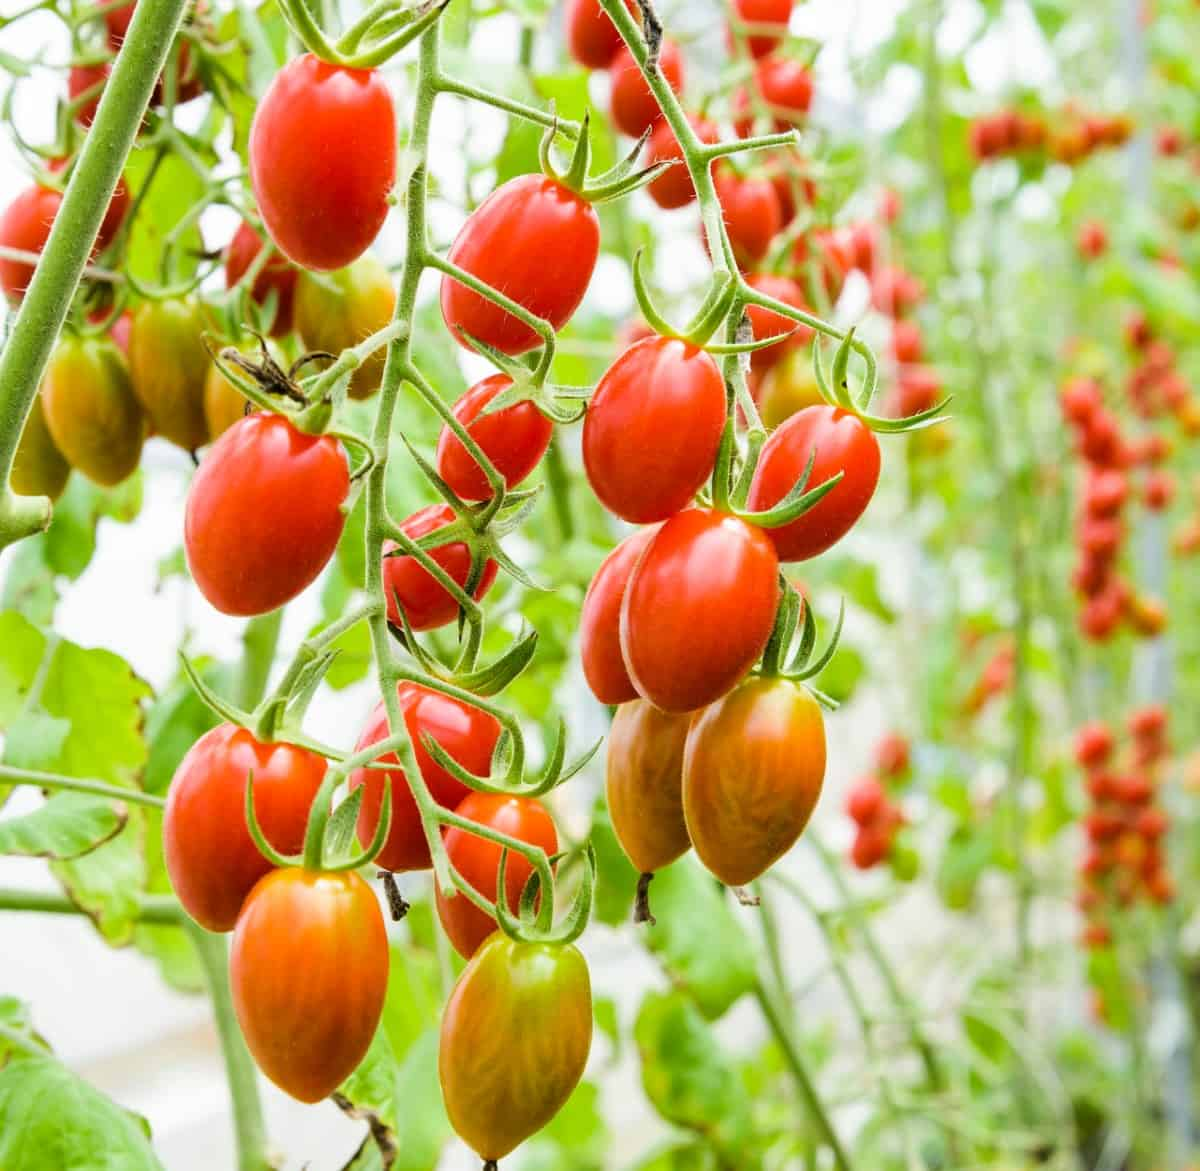 The tomato is actually a fruit rather than a vegetable.